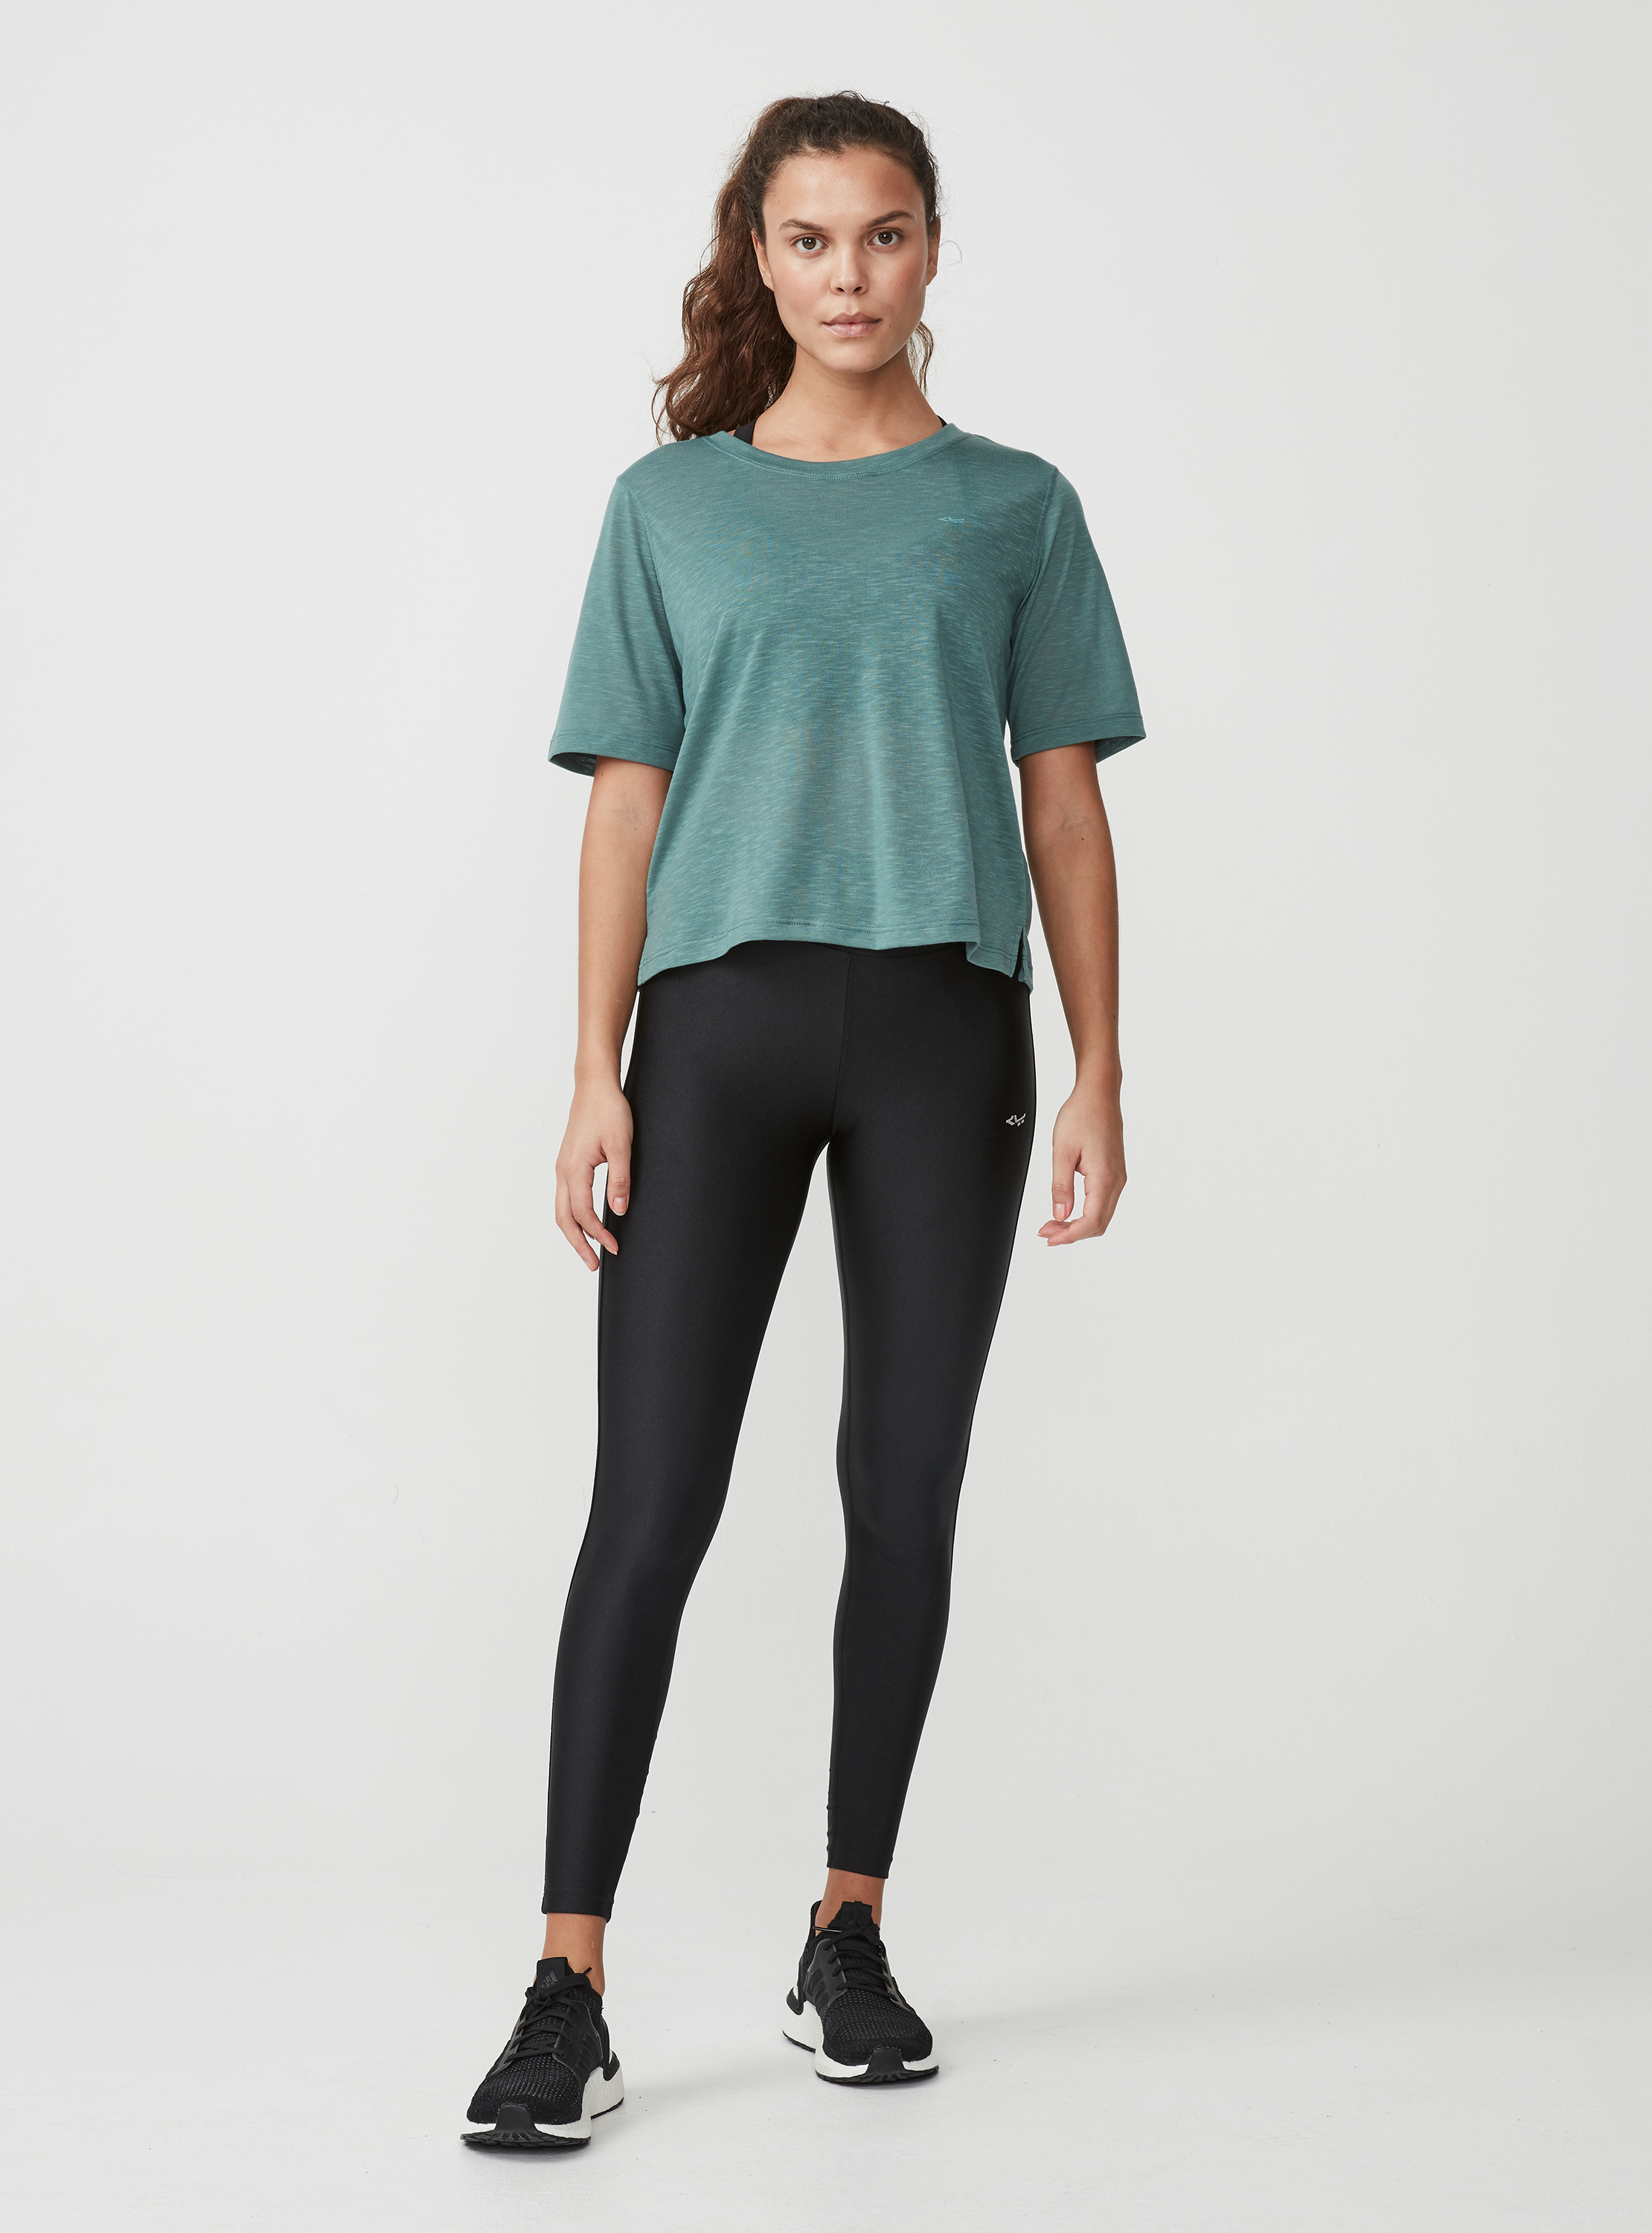 Shop the look - Sheer tee, Sea Green